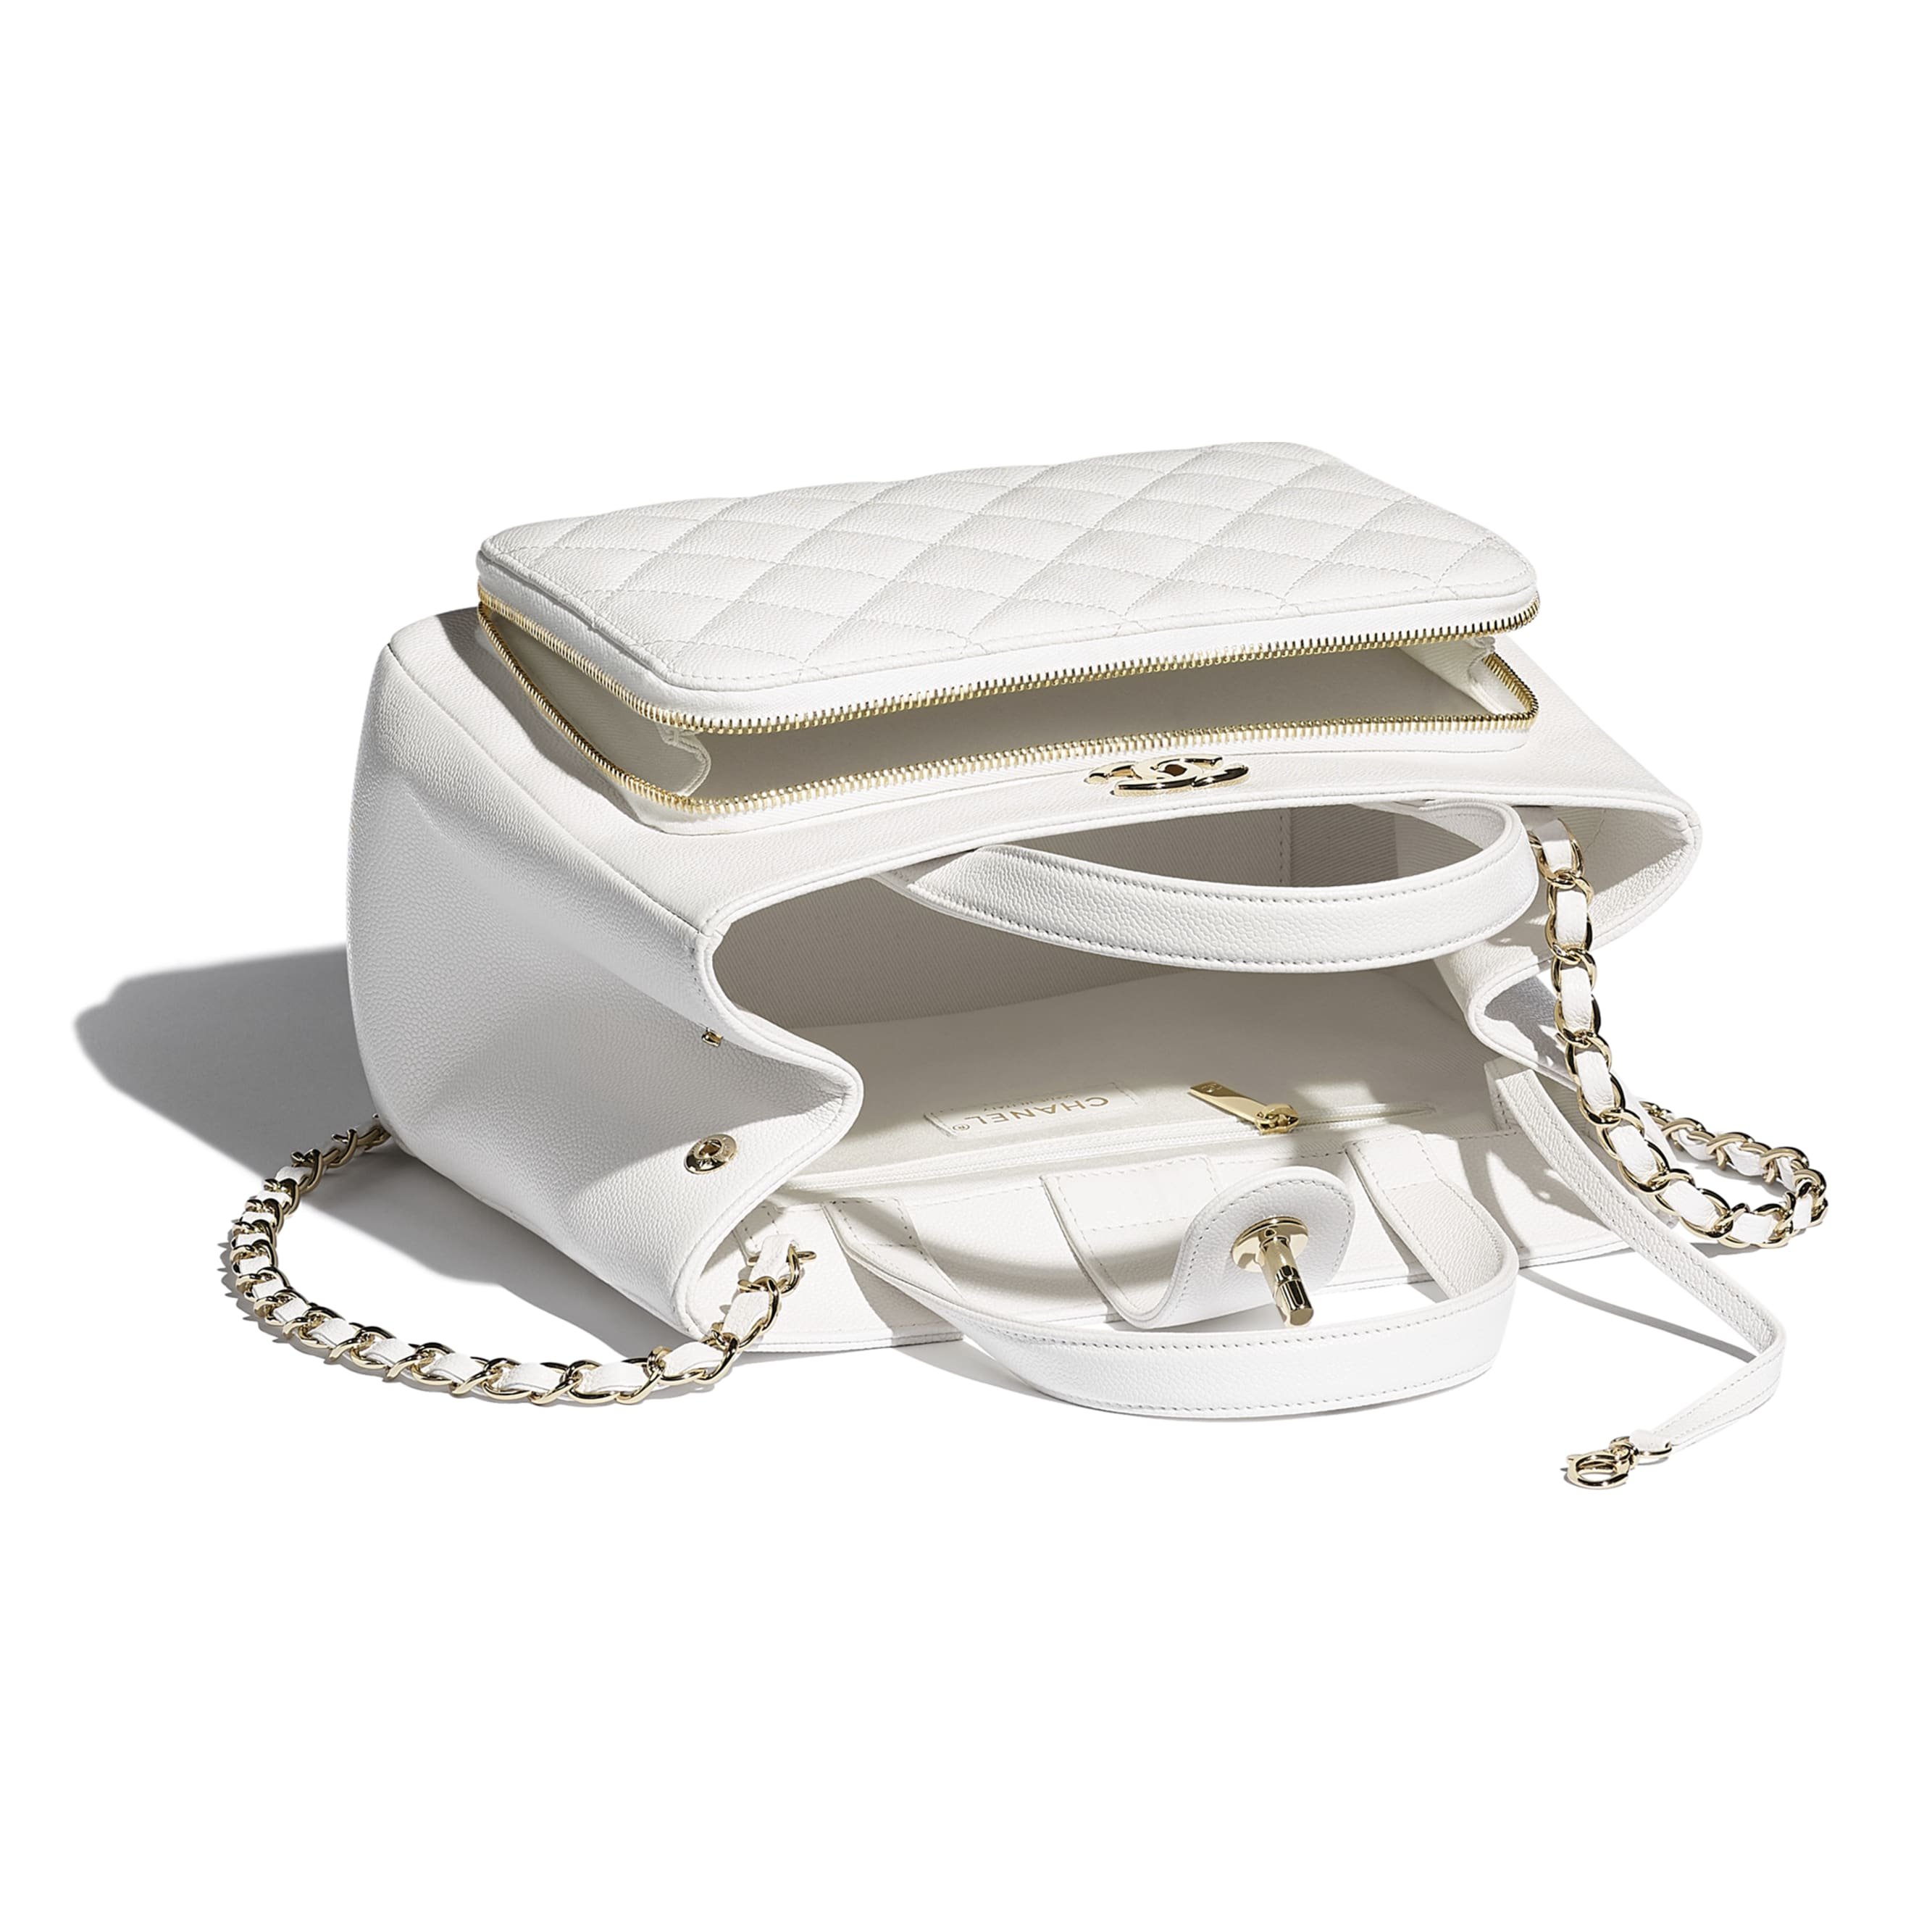 Small Tote - White - Grained Calfskin & Gold-Tone Metal - CHANEL - Other view - see standard sized version